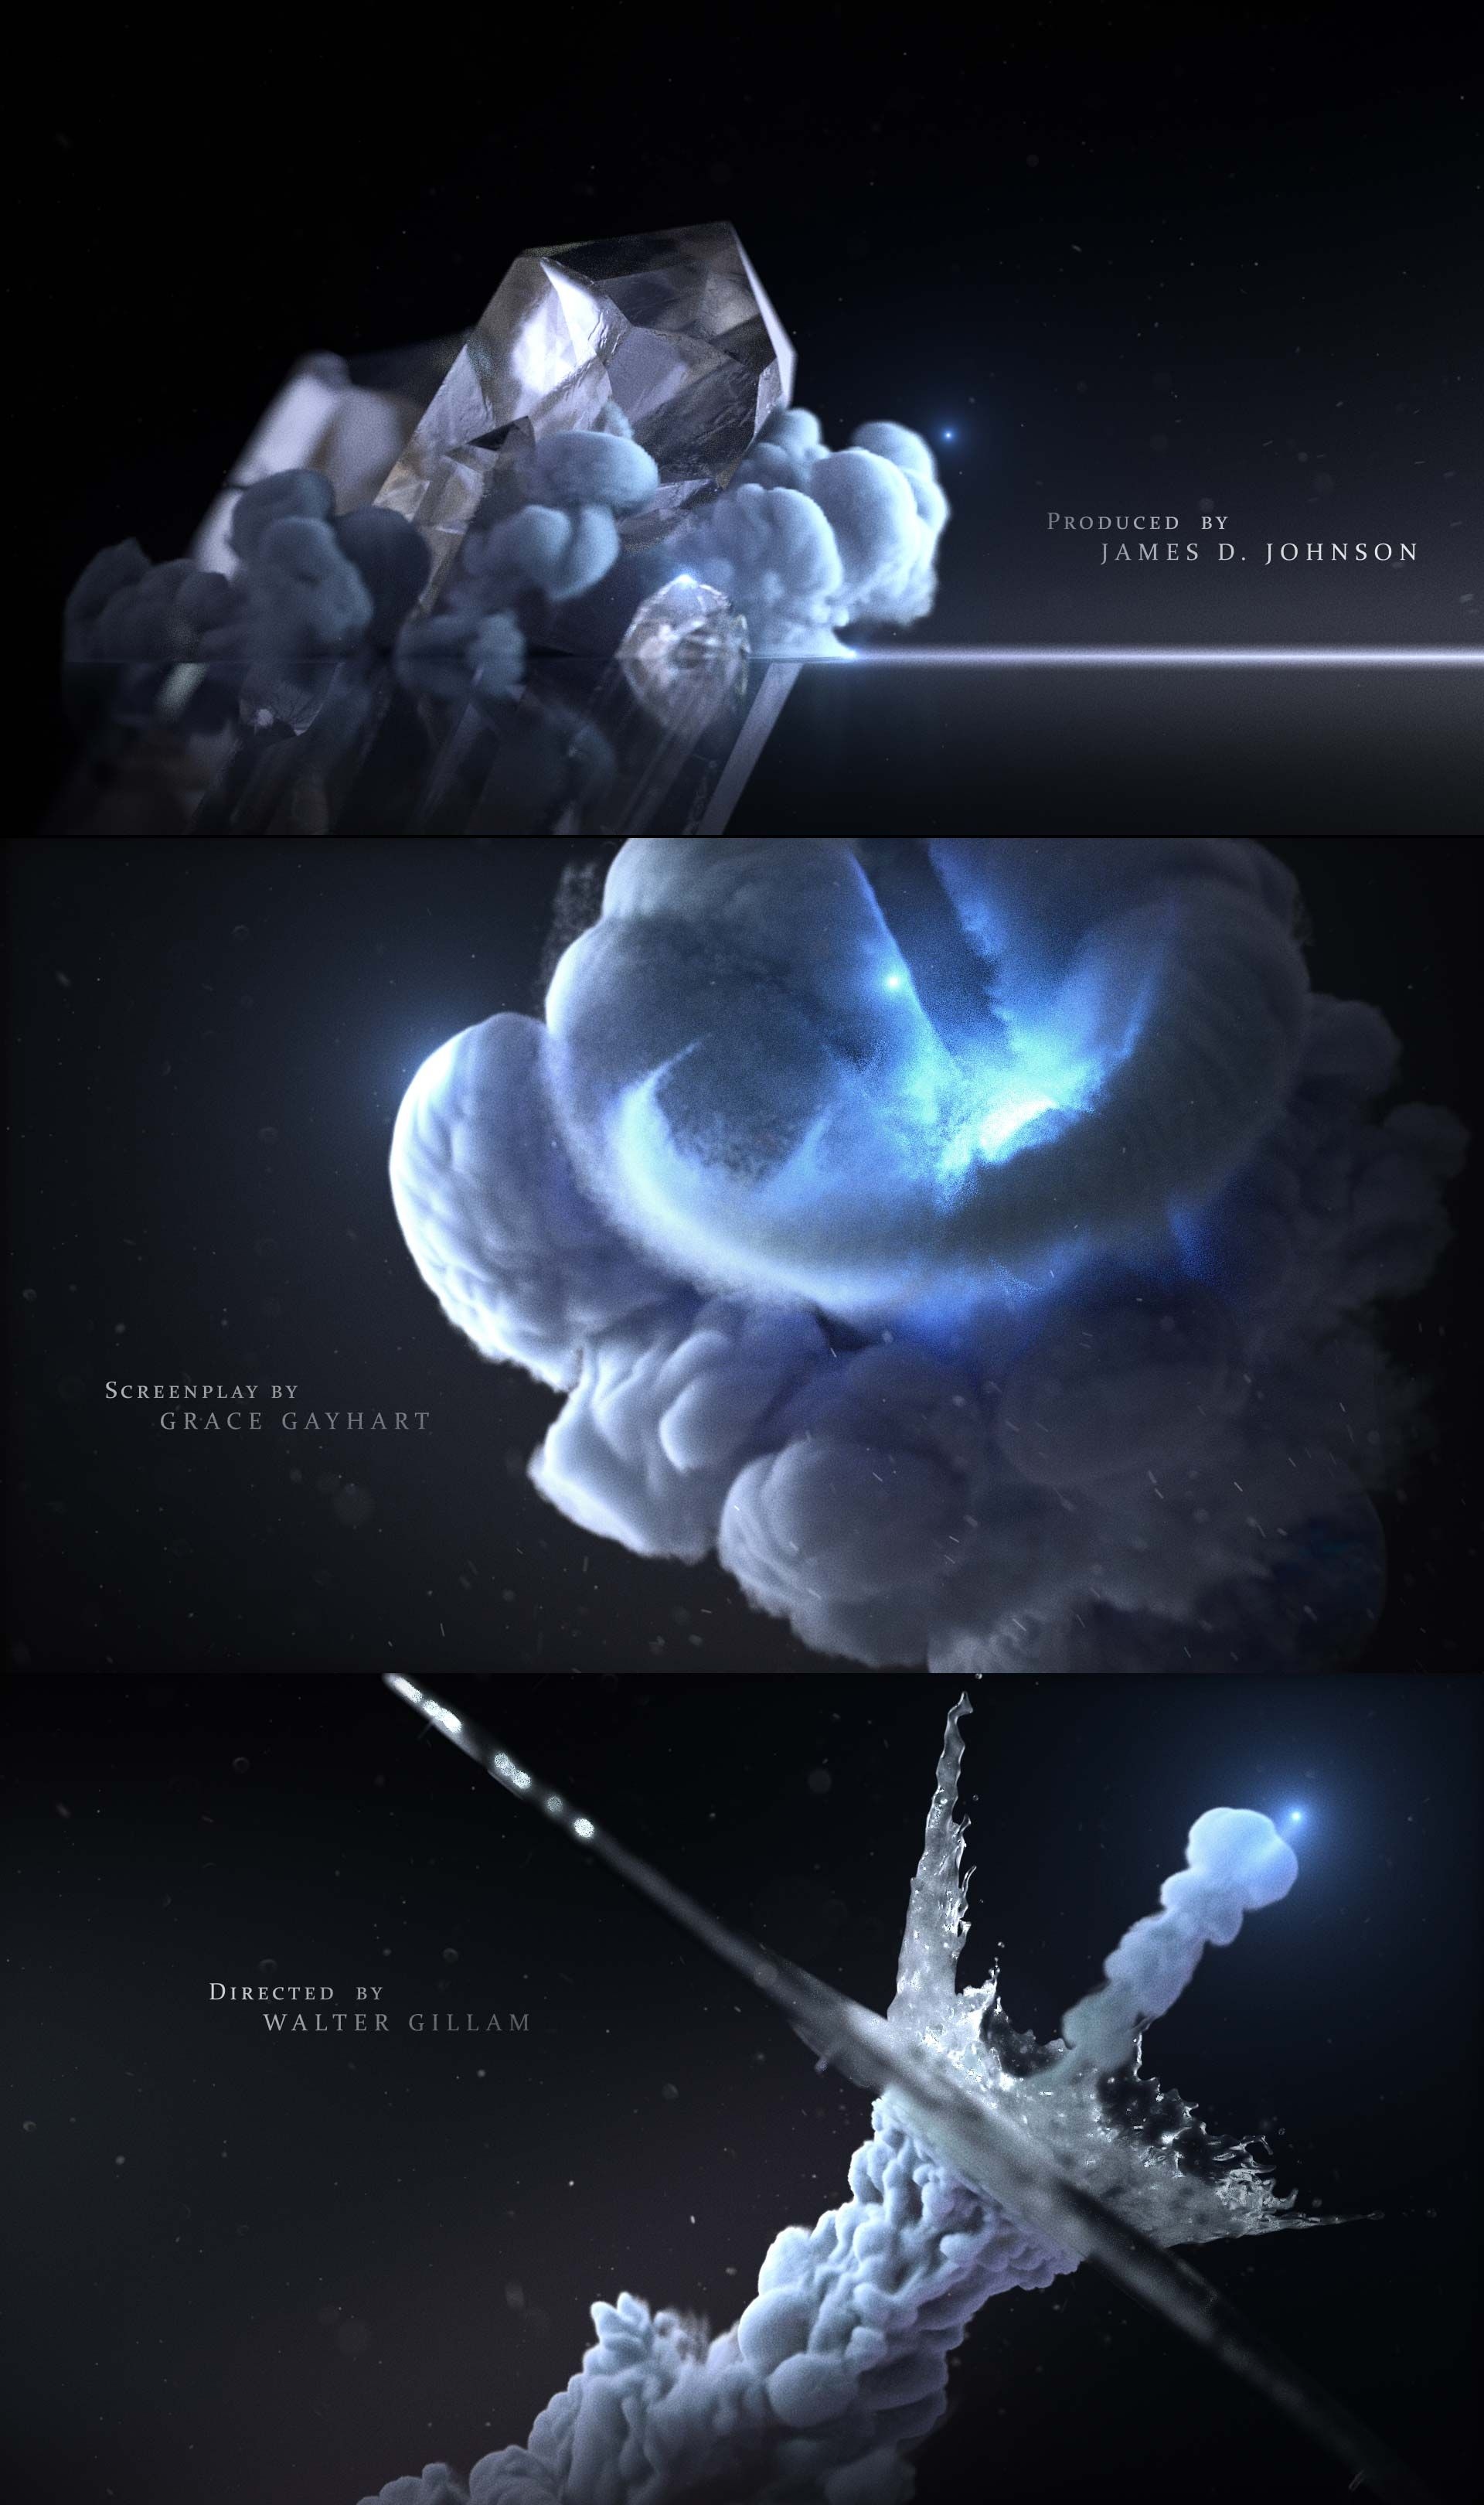 Opening Titles / C4D / Octane / AE / Motion Graphics / Styleframe / Storyboards / Still frames / Moodboards / Styleframes / Main Titles / Smoke / TurbulenceFD / Realflow / www.guillaumecombeaud.com #motiongraphic